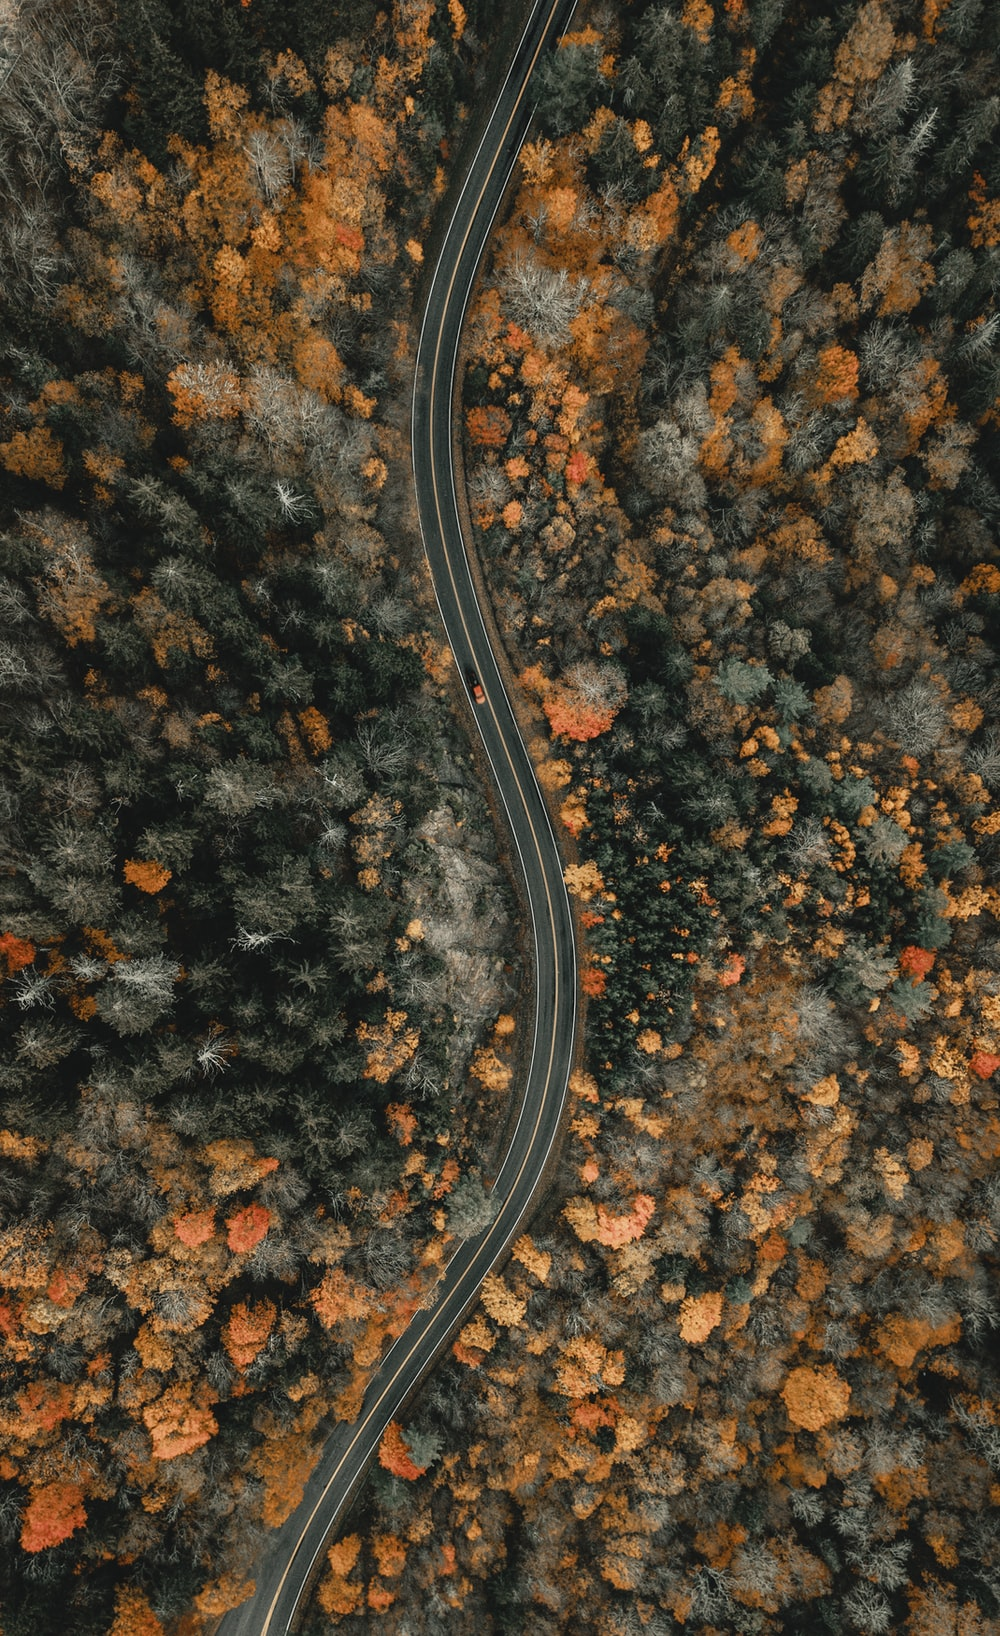 aerial view of trees during daytime